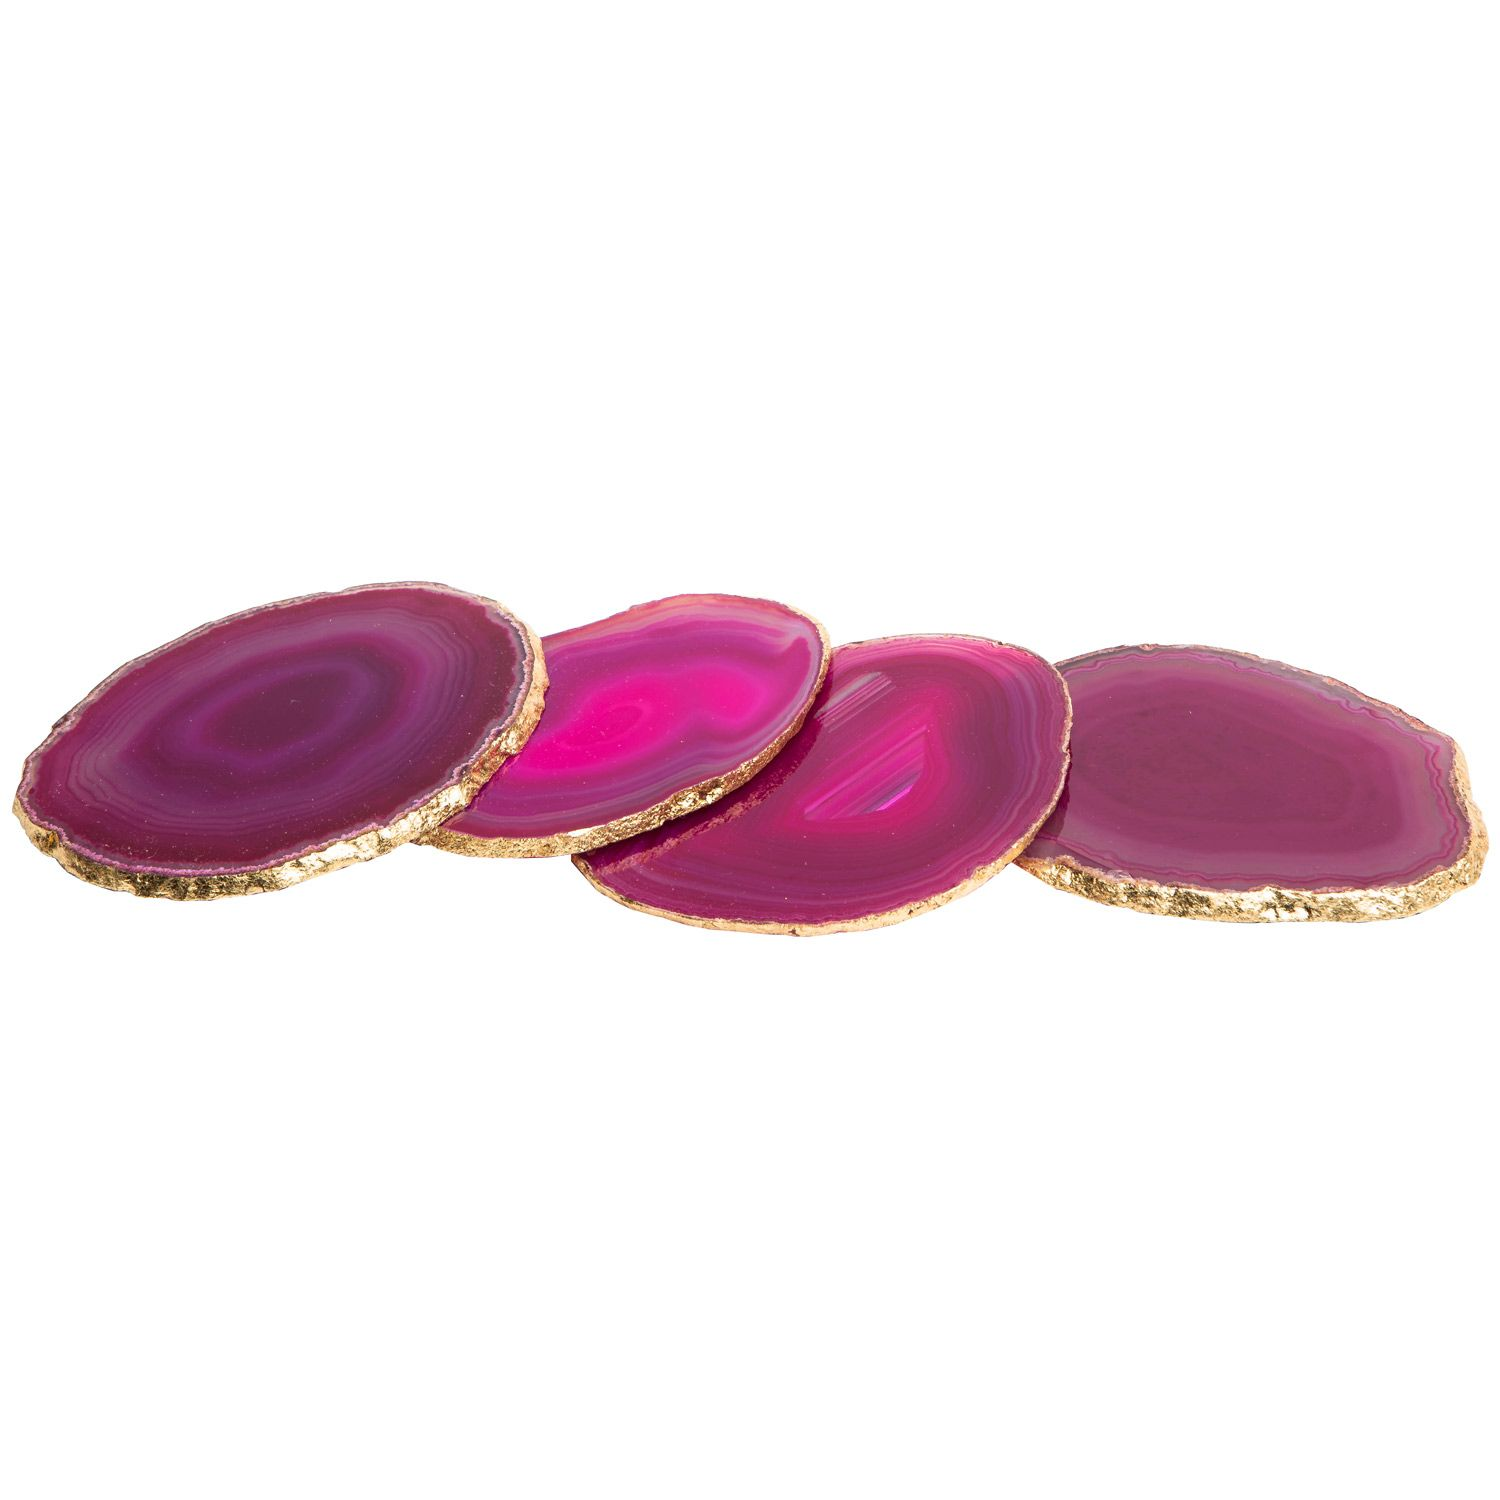 Times Two Design Agate Pink Coaster Set of 4 @Zinc_Door